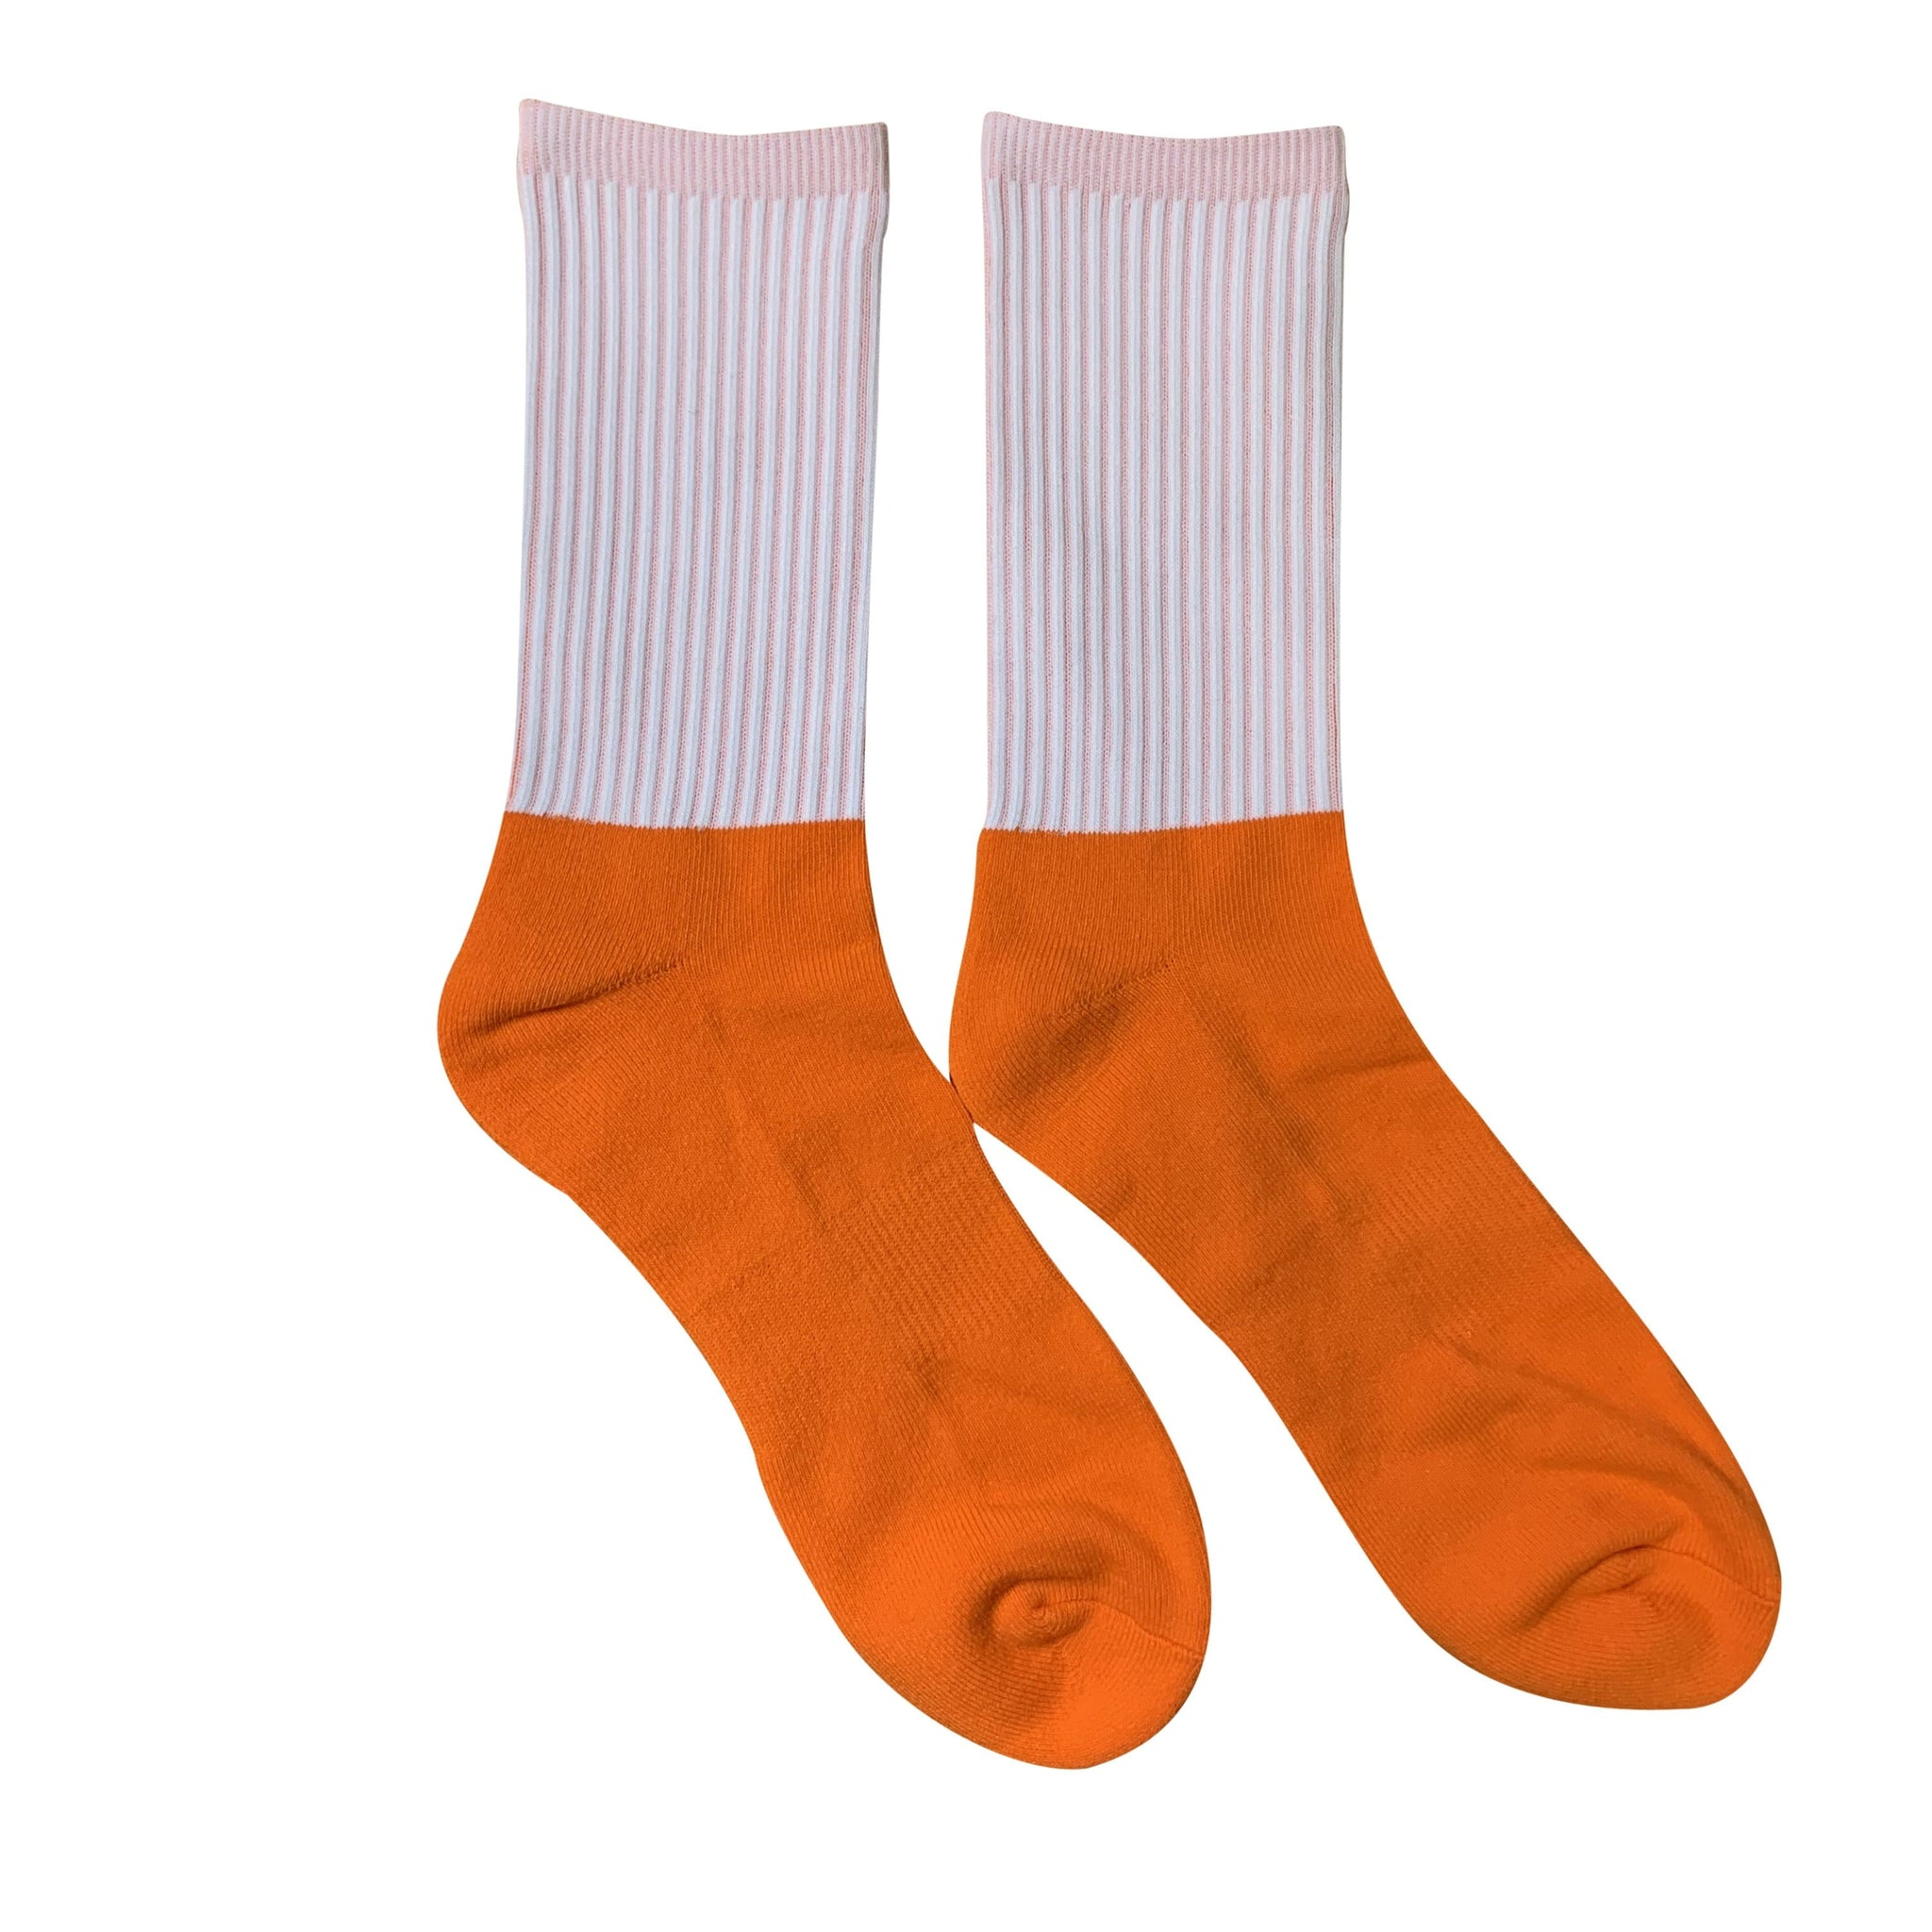 Blank Athletic Socks (Cotton Bottom)